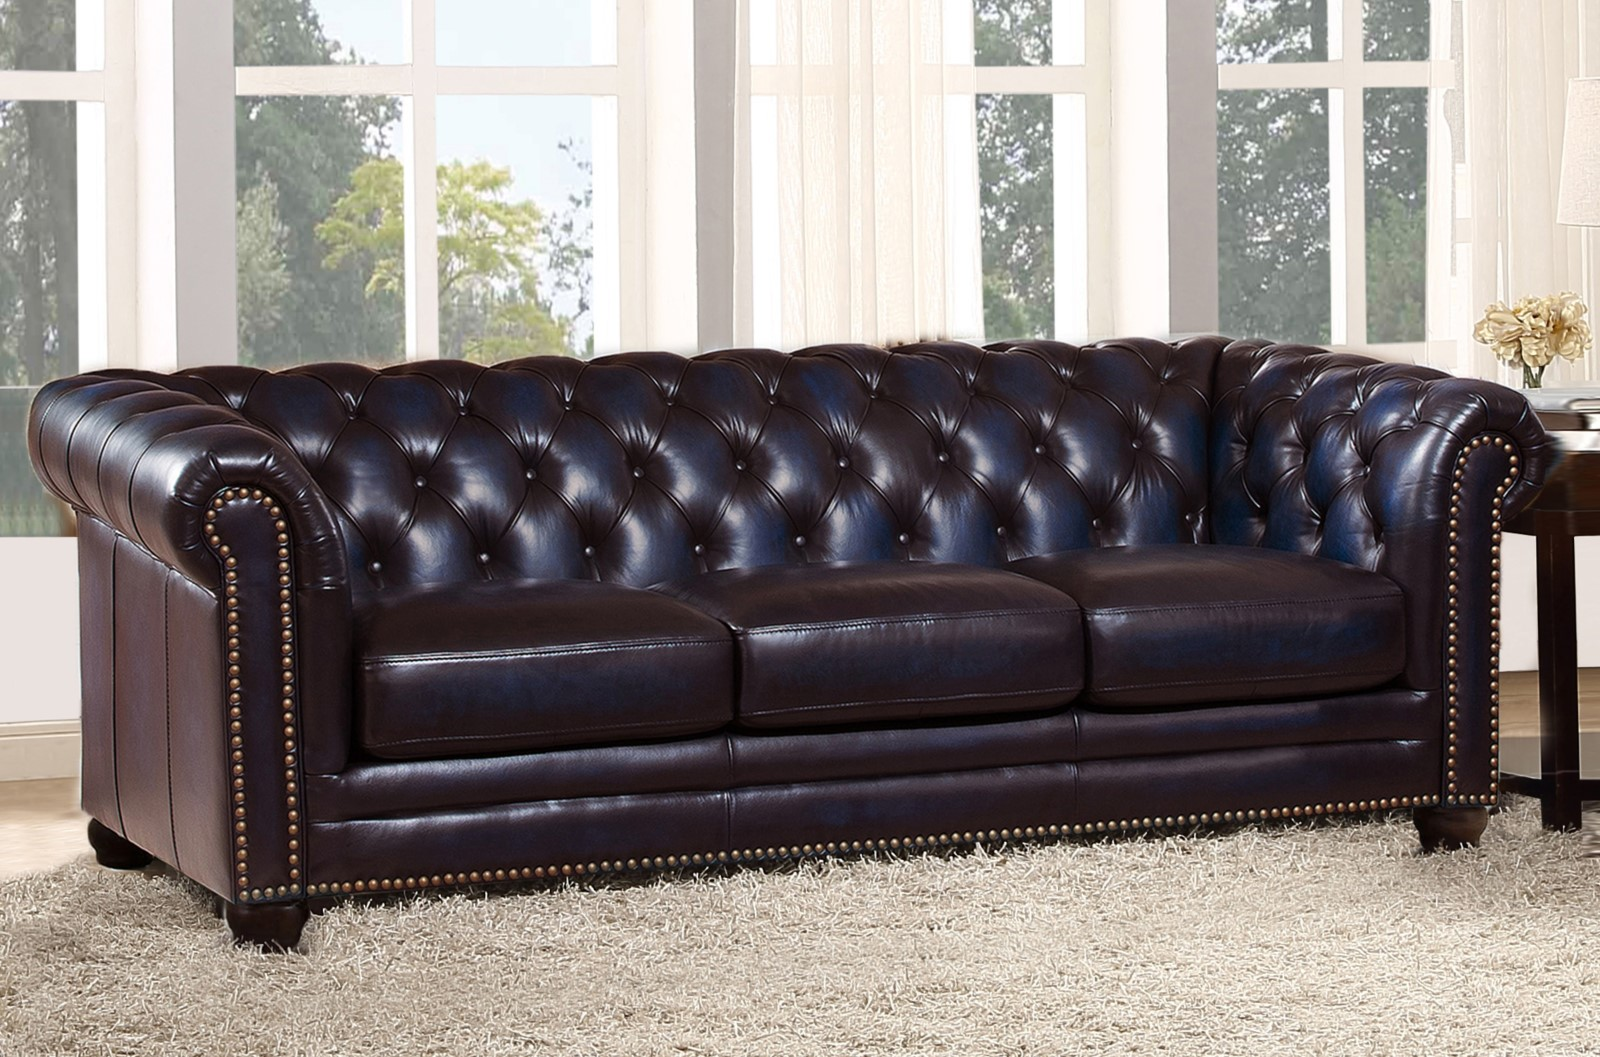 Dynasty 100 Genuine Leather Chesterfield Sofa Amp Loveseat